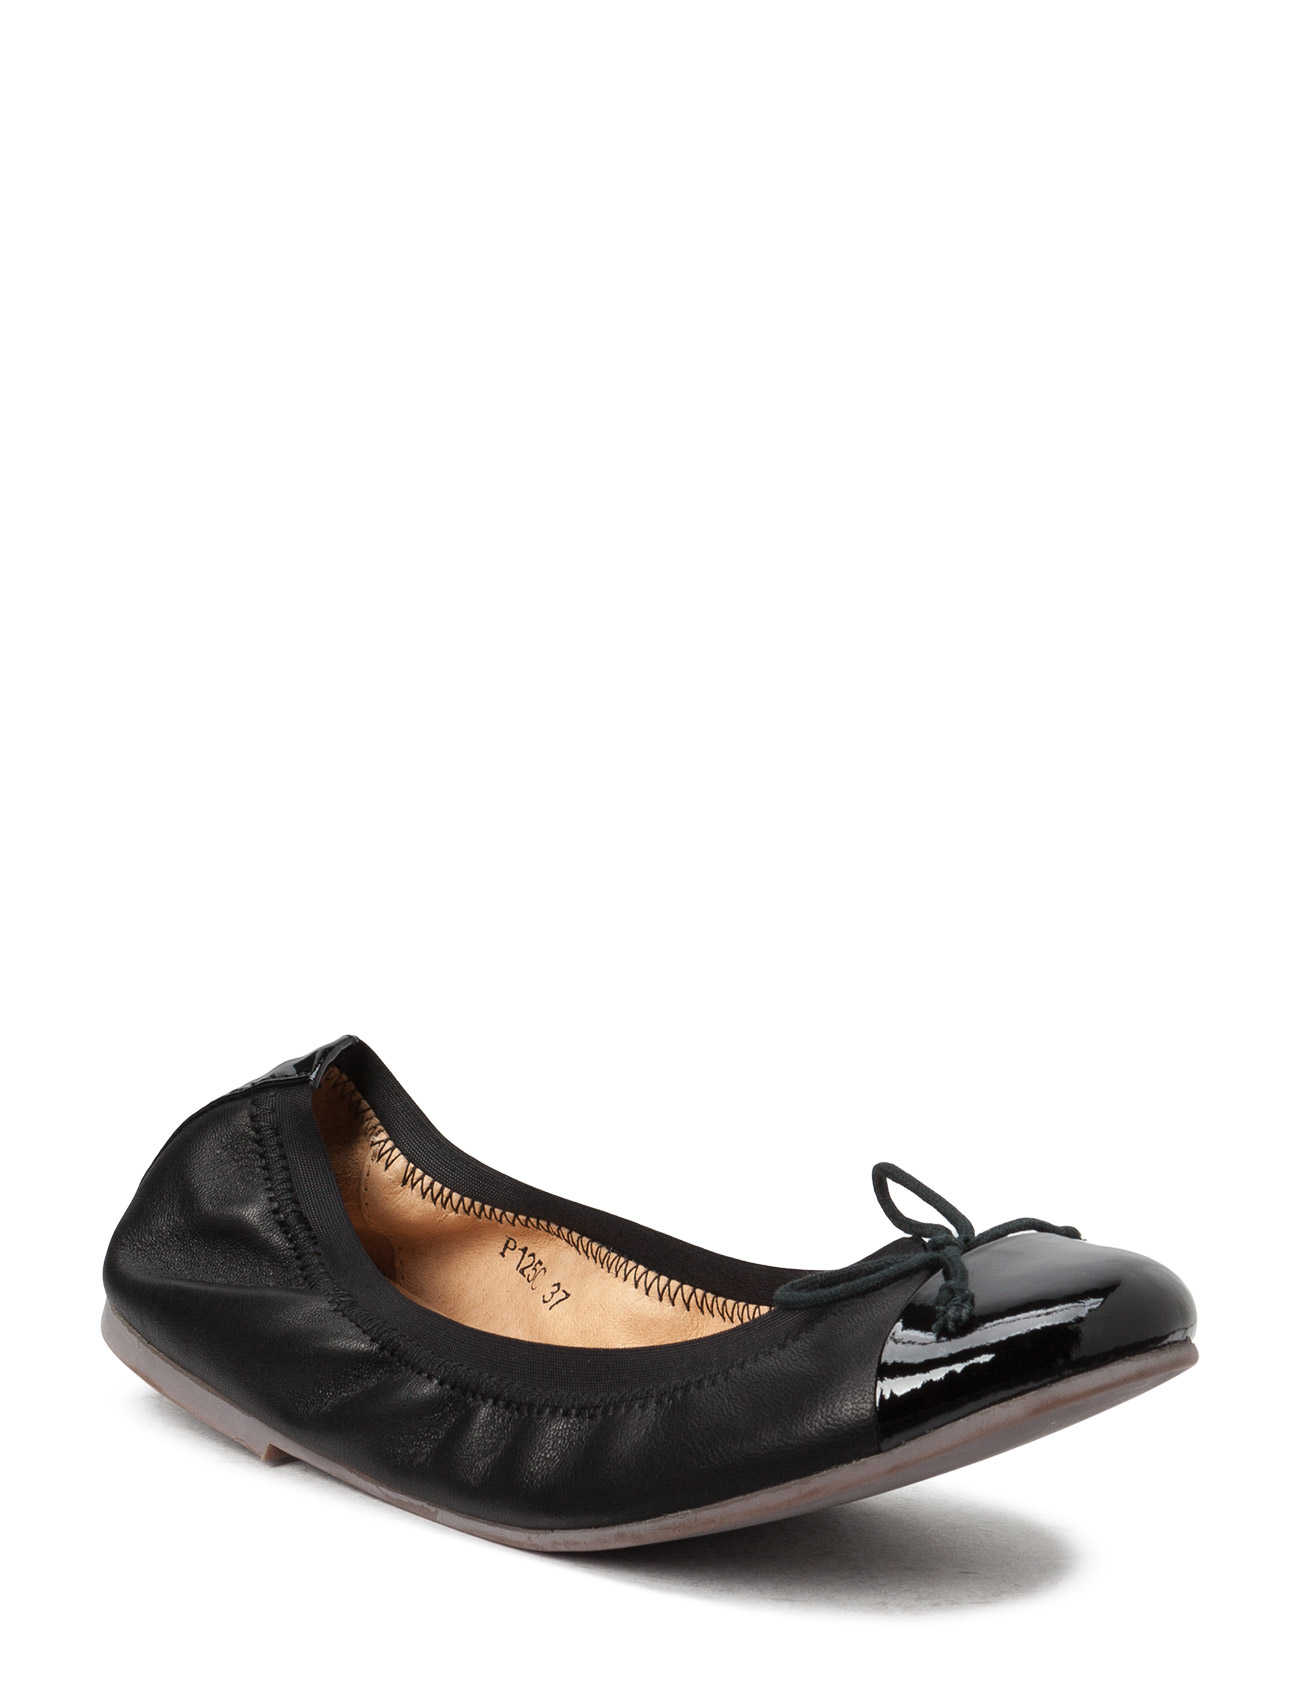 a34727449690 Leather Ballerina (Black) (499 kr) - Petit by Sofie Schnoor ...